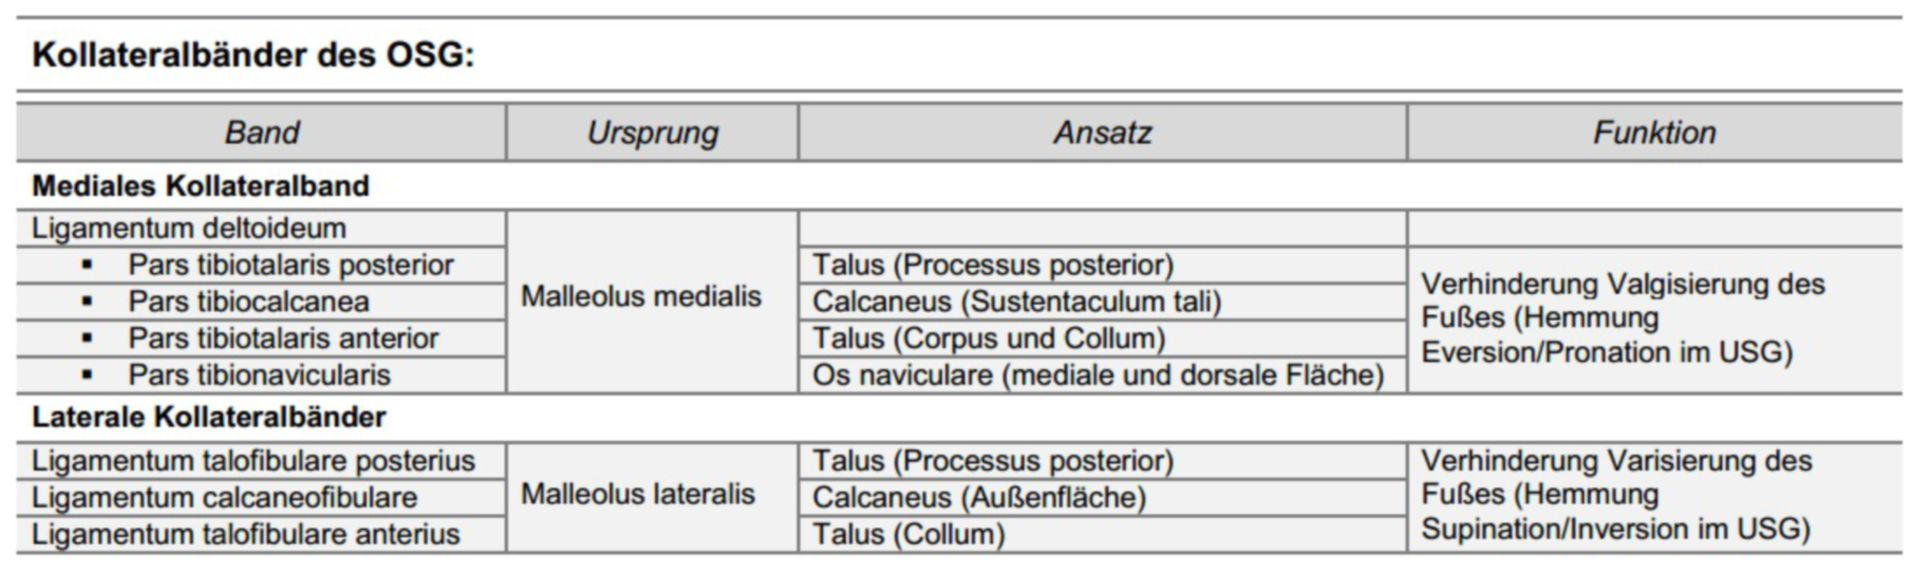 Collateral ligaments of the talocrural joint